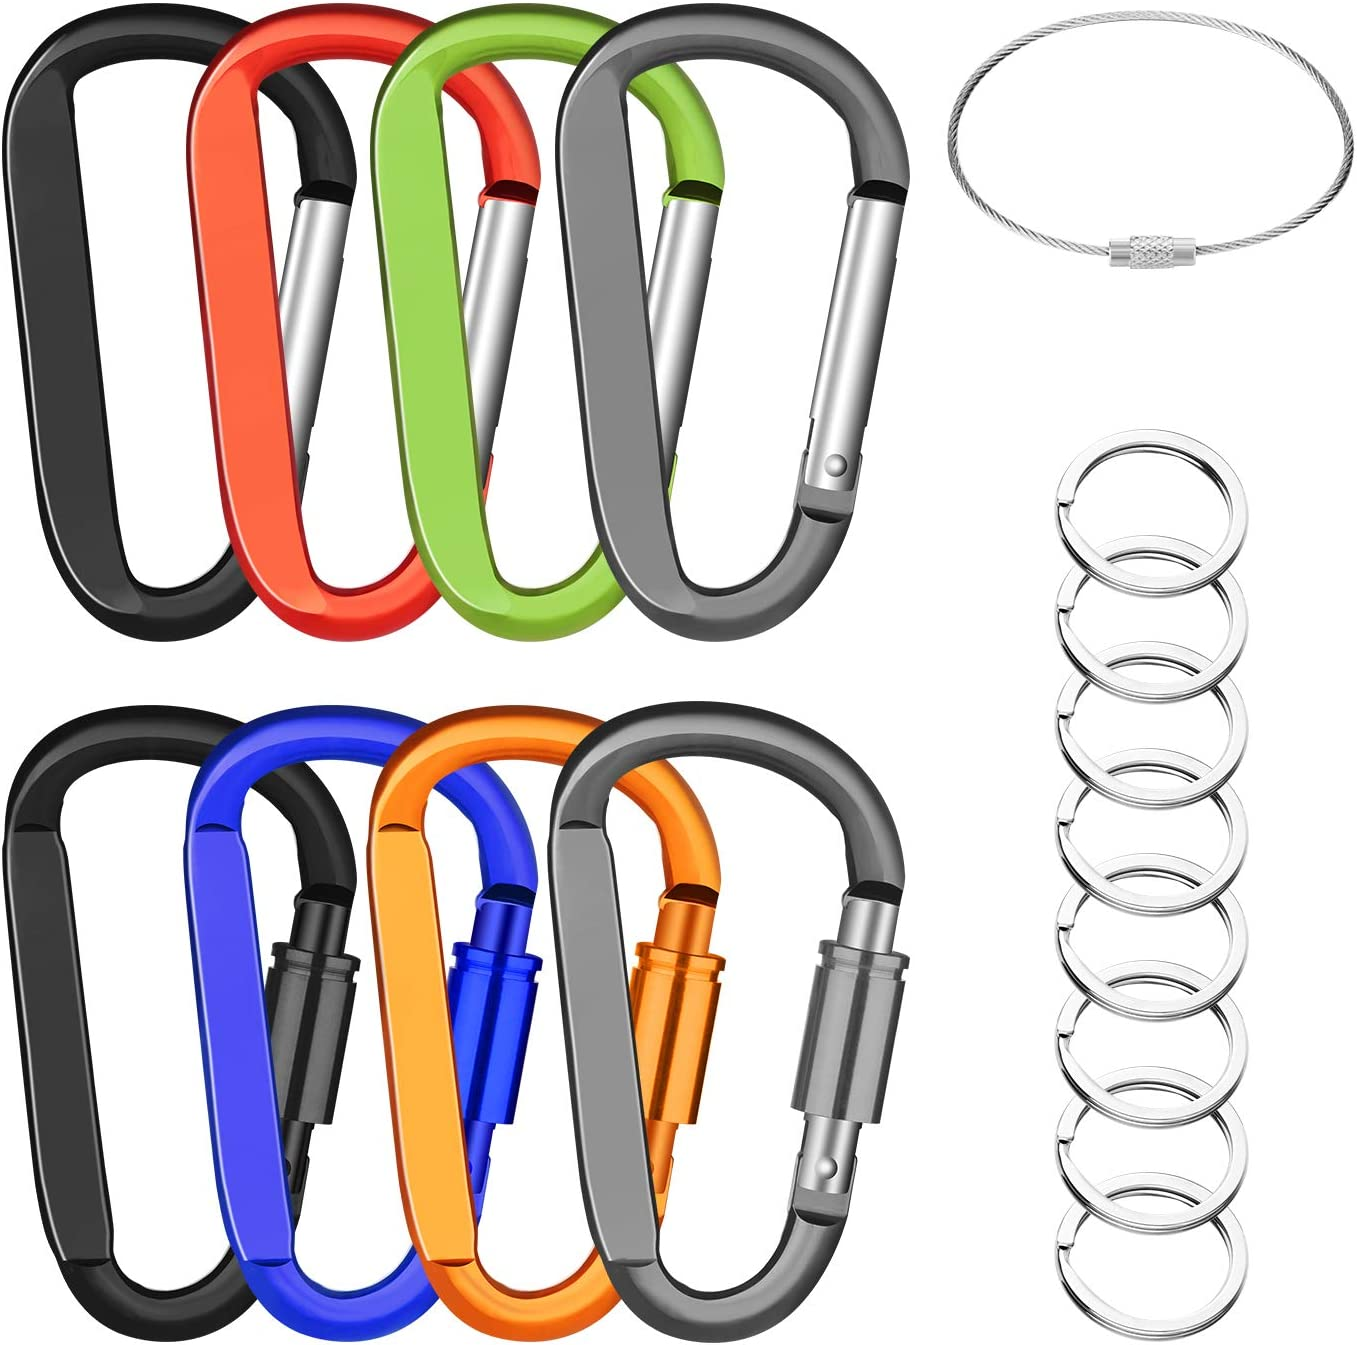 """Michael Josh 3"""" 8PCS Carabiner Caribeaner Keychain Clip,with 8PCS Stainless Wire Cables,8 X Keyrings,4PCS Locking + 4PCS Nonlocking Hook for Backpack"""